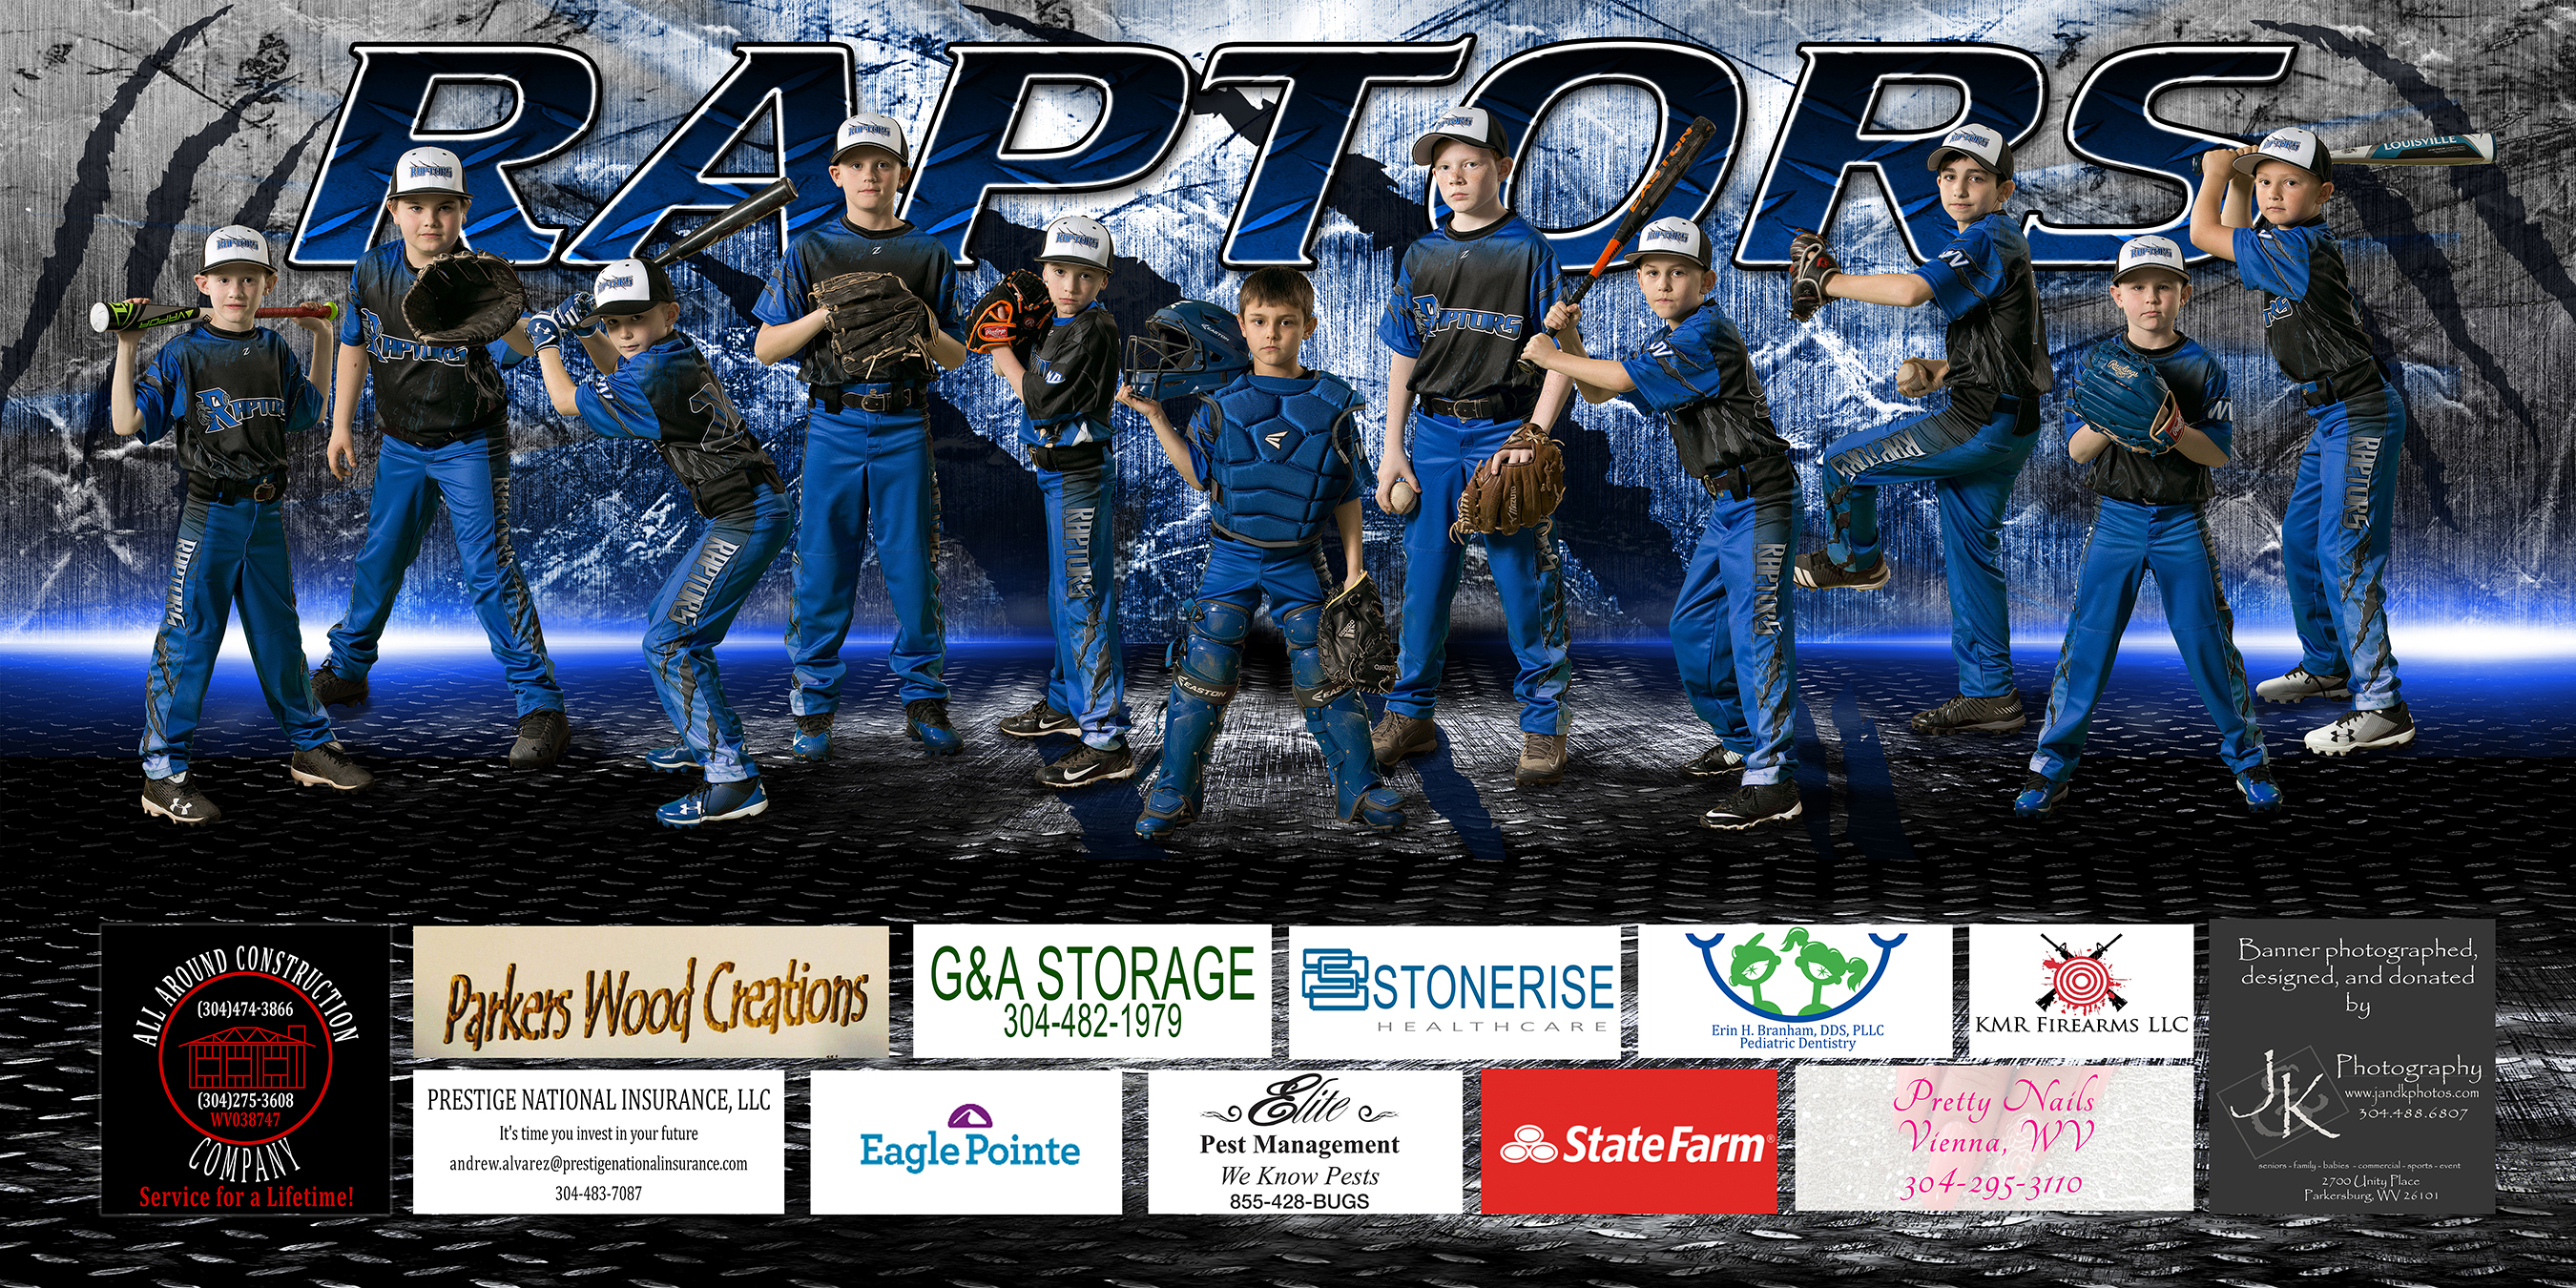 Baseball Team Photo Banner